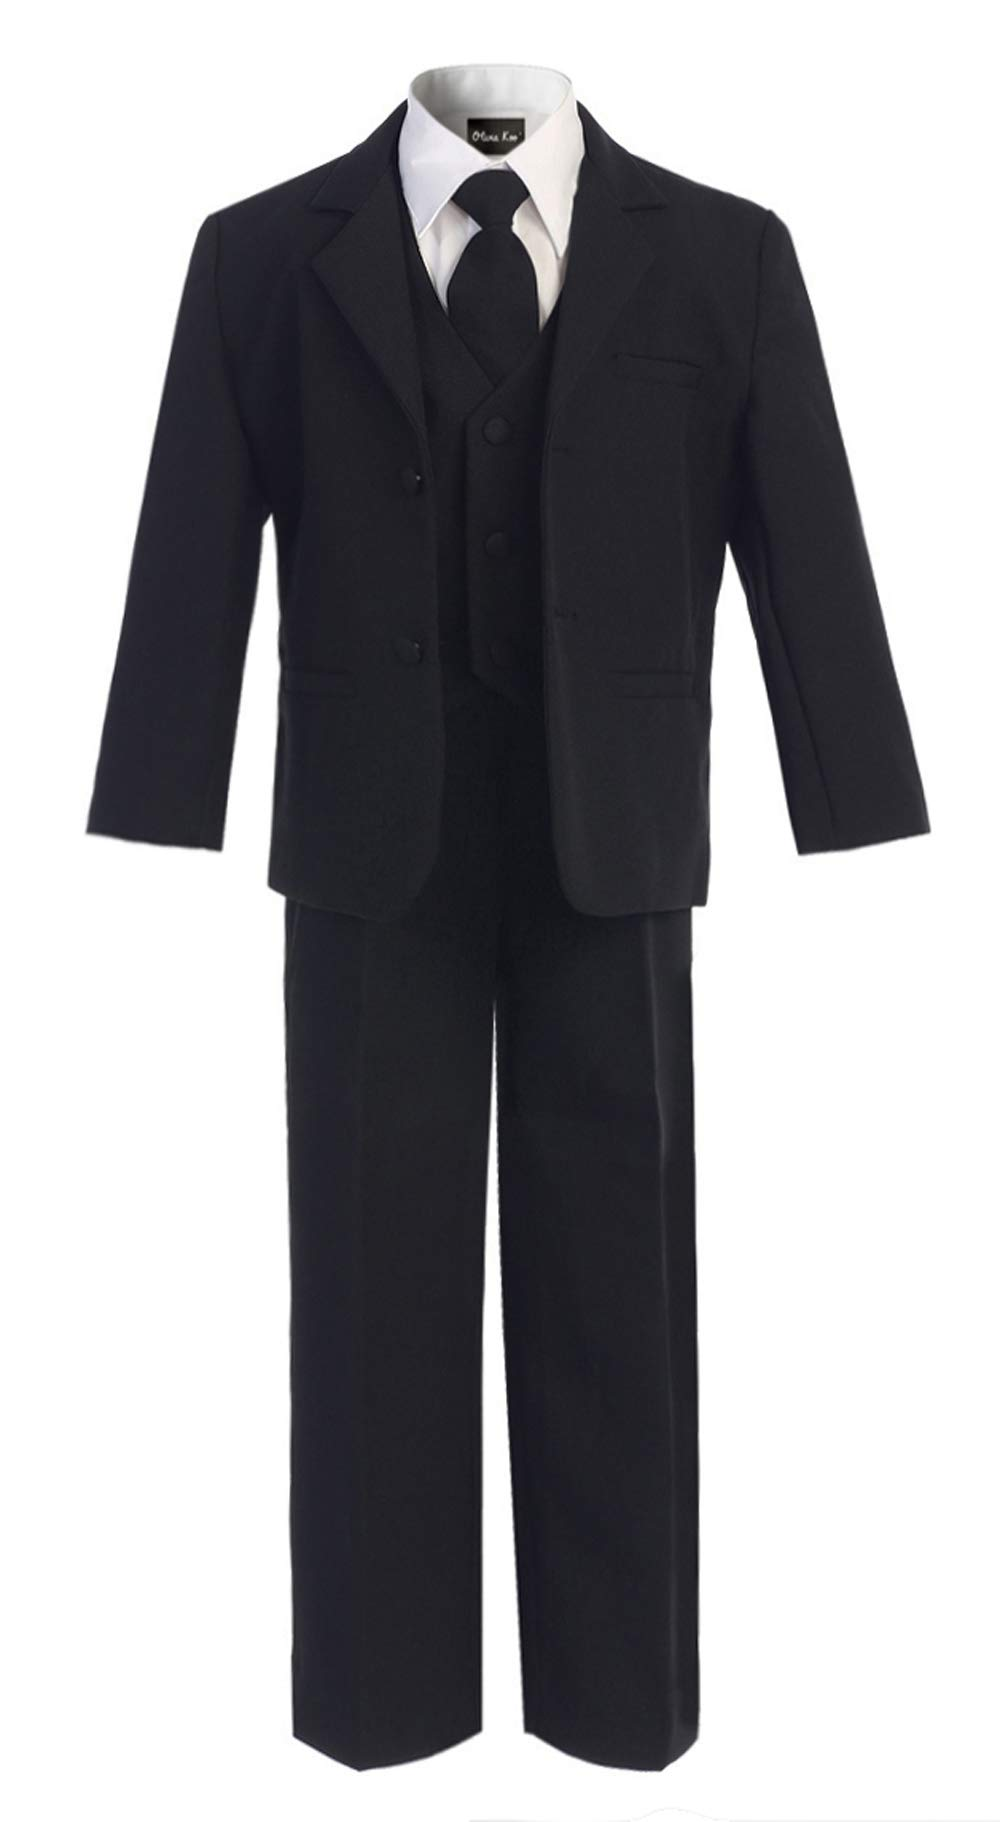 OLIVIA KOO Boys Classic Suit Set with Cloth Cover Buttons 12 Black